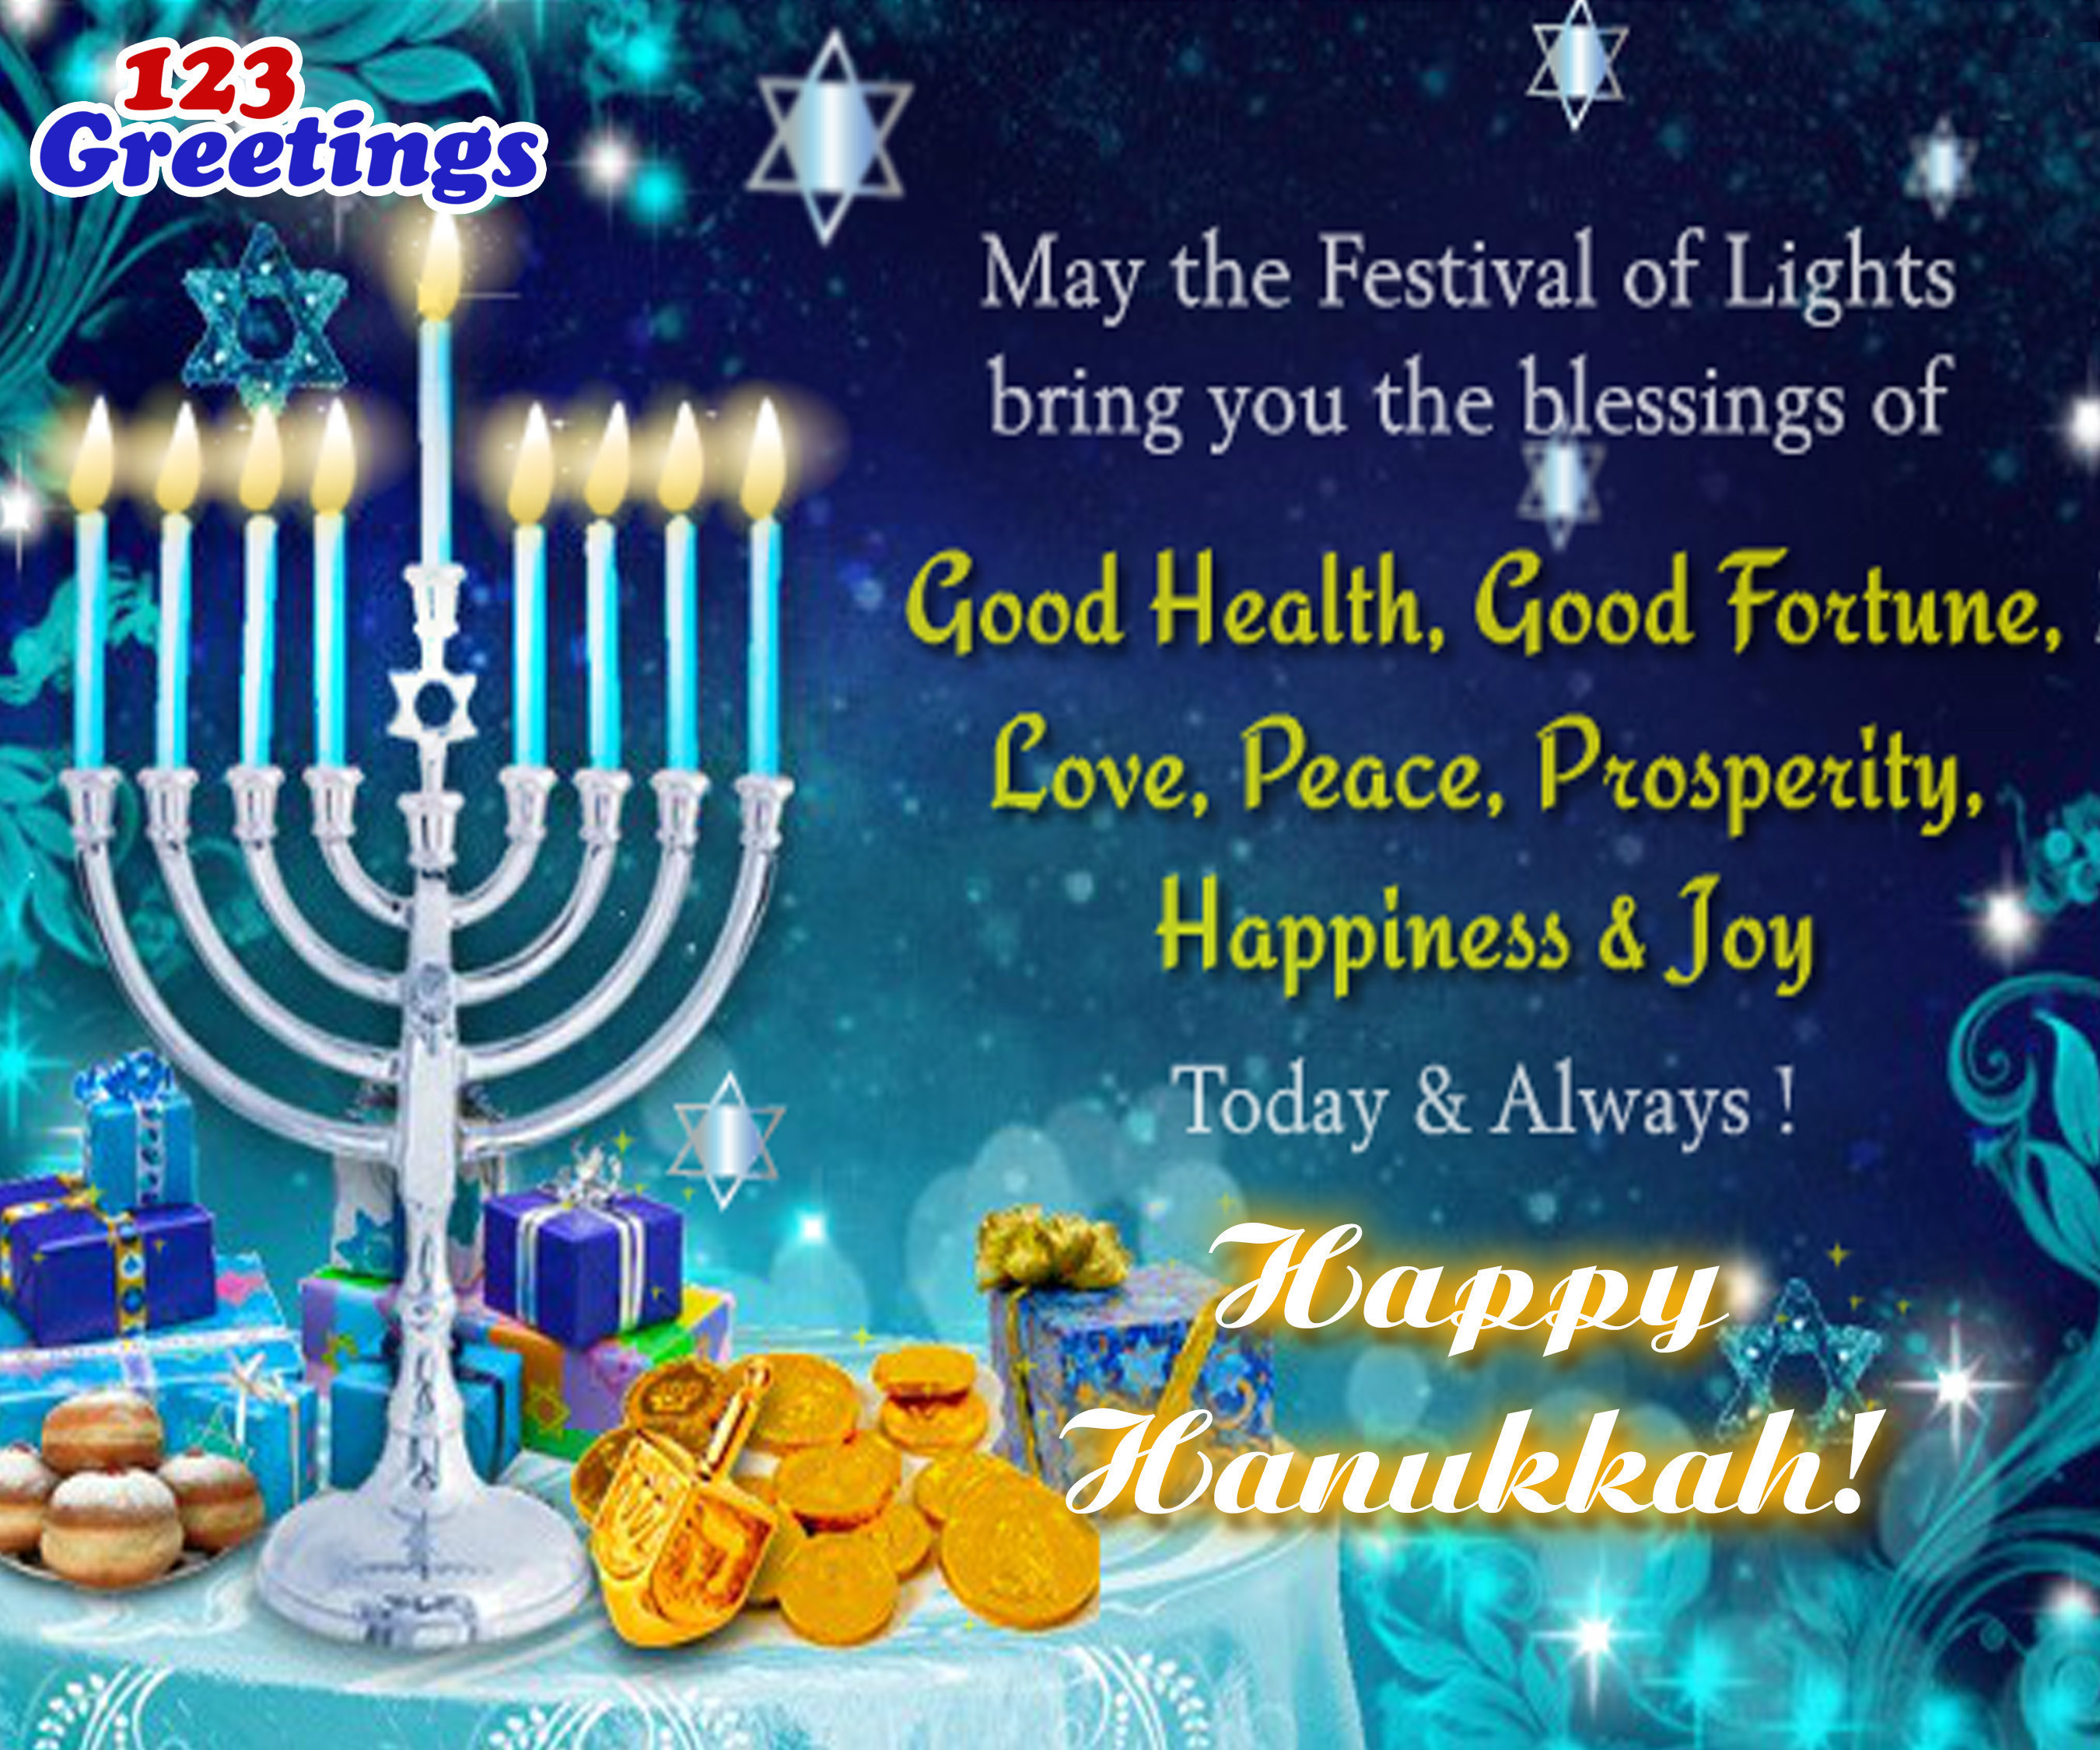 Light Up Your Life This Year With A Menorah And Enhance Your Hanukkah Celebration With